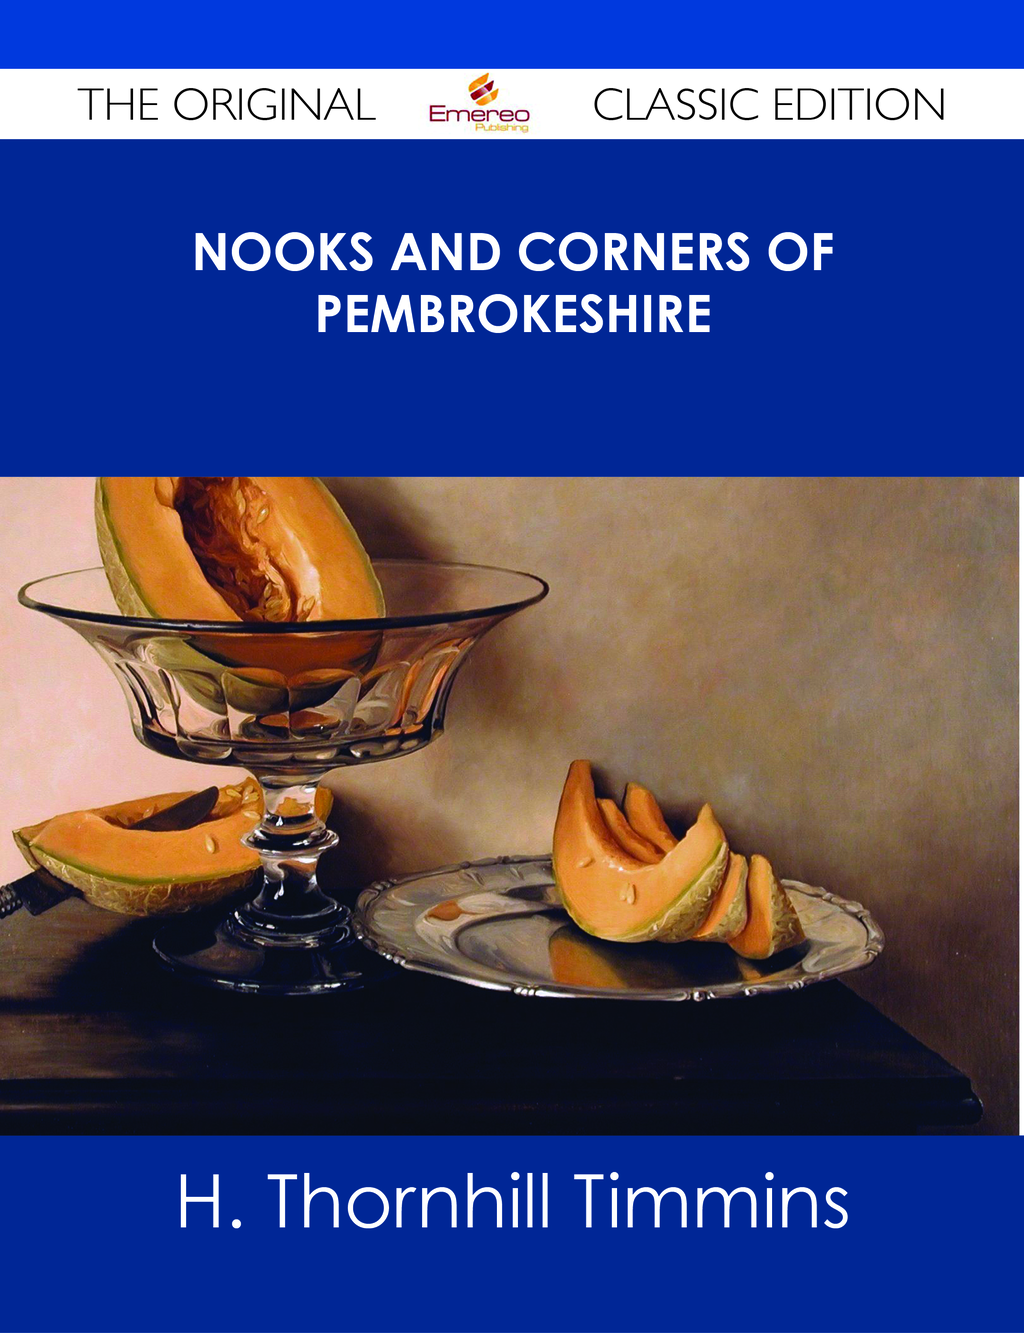 Nooks and Corners of Pembrokeshire - The Original Classic Edition